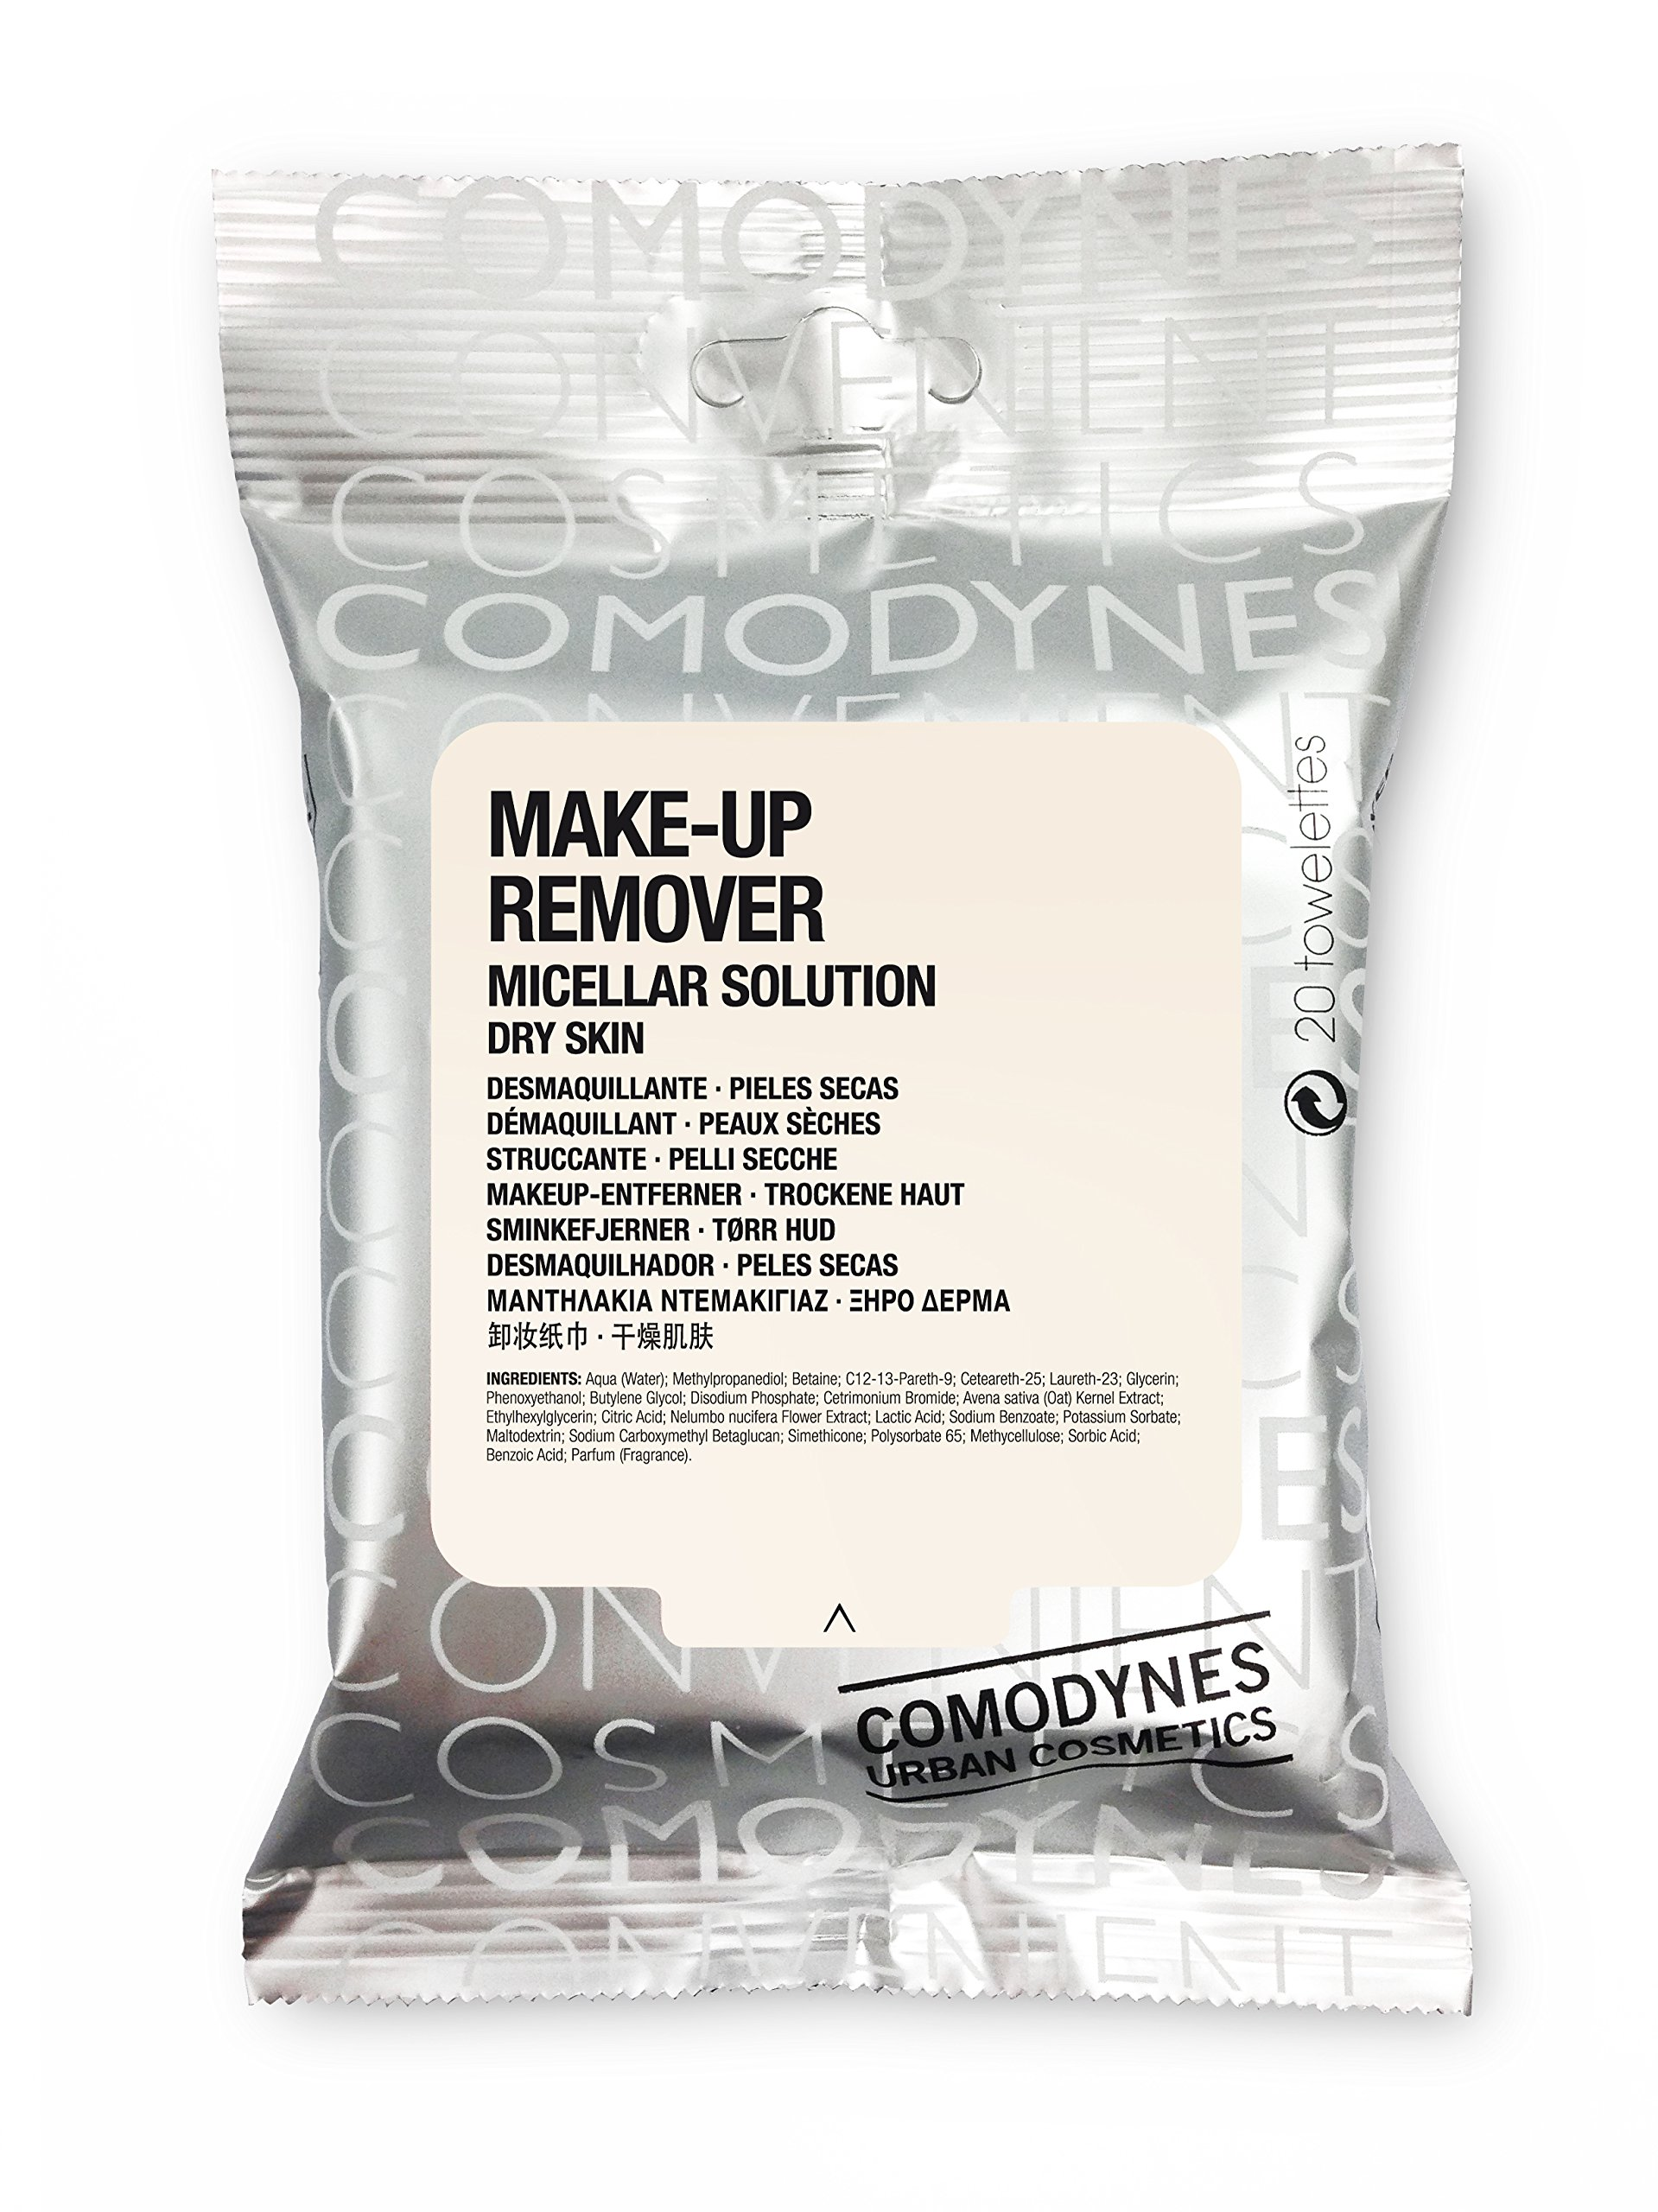 Comodynes Make Up Remover Towels (Dry Skin), 20 towelettes